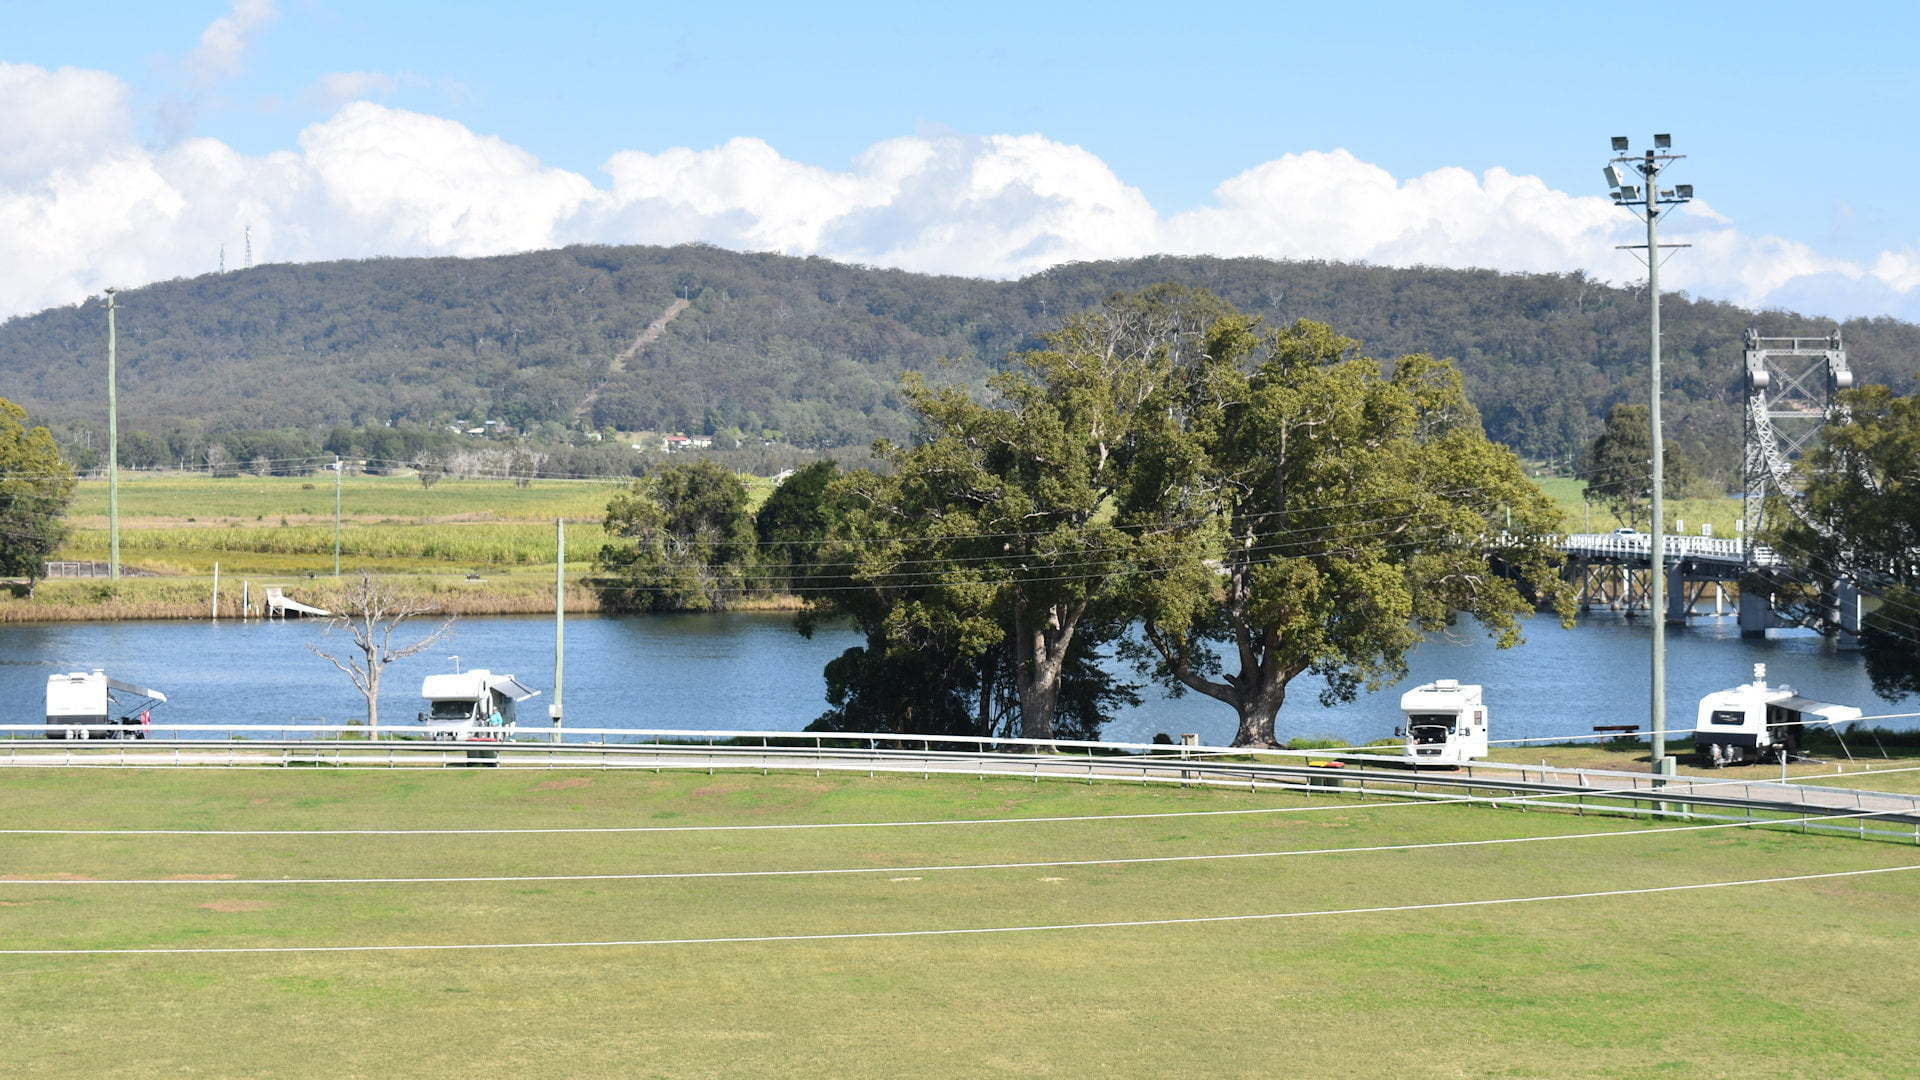 Maclean Showground Camping by the river banks of the Clarence River